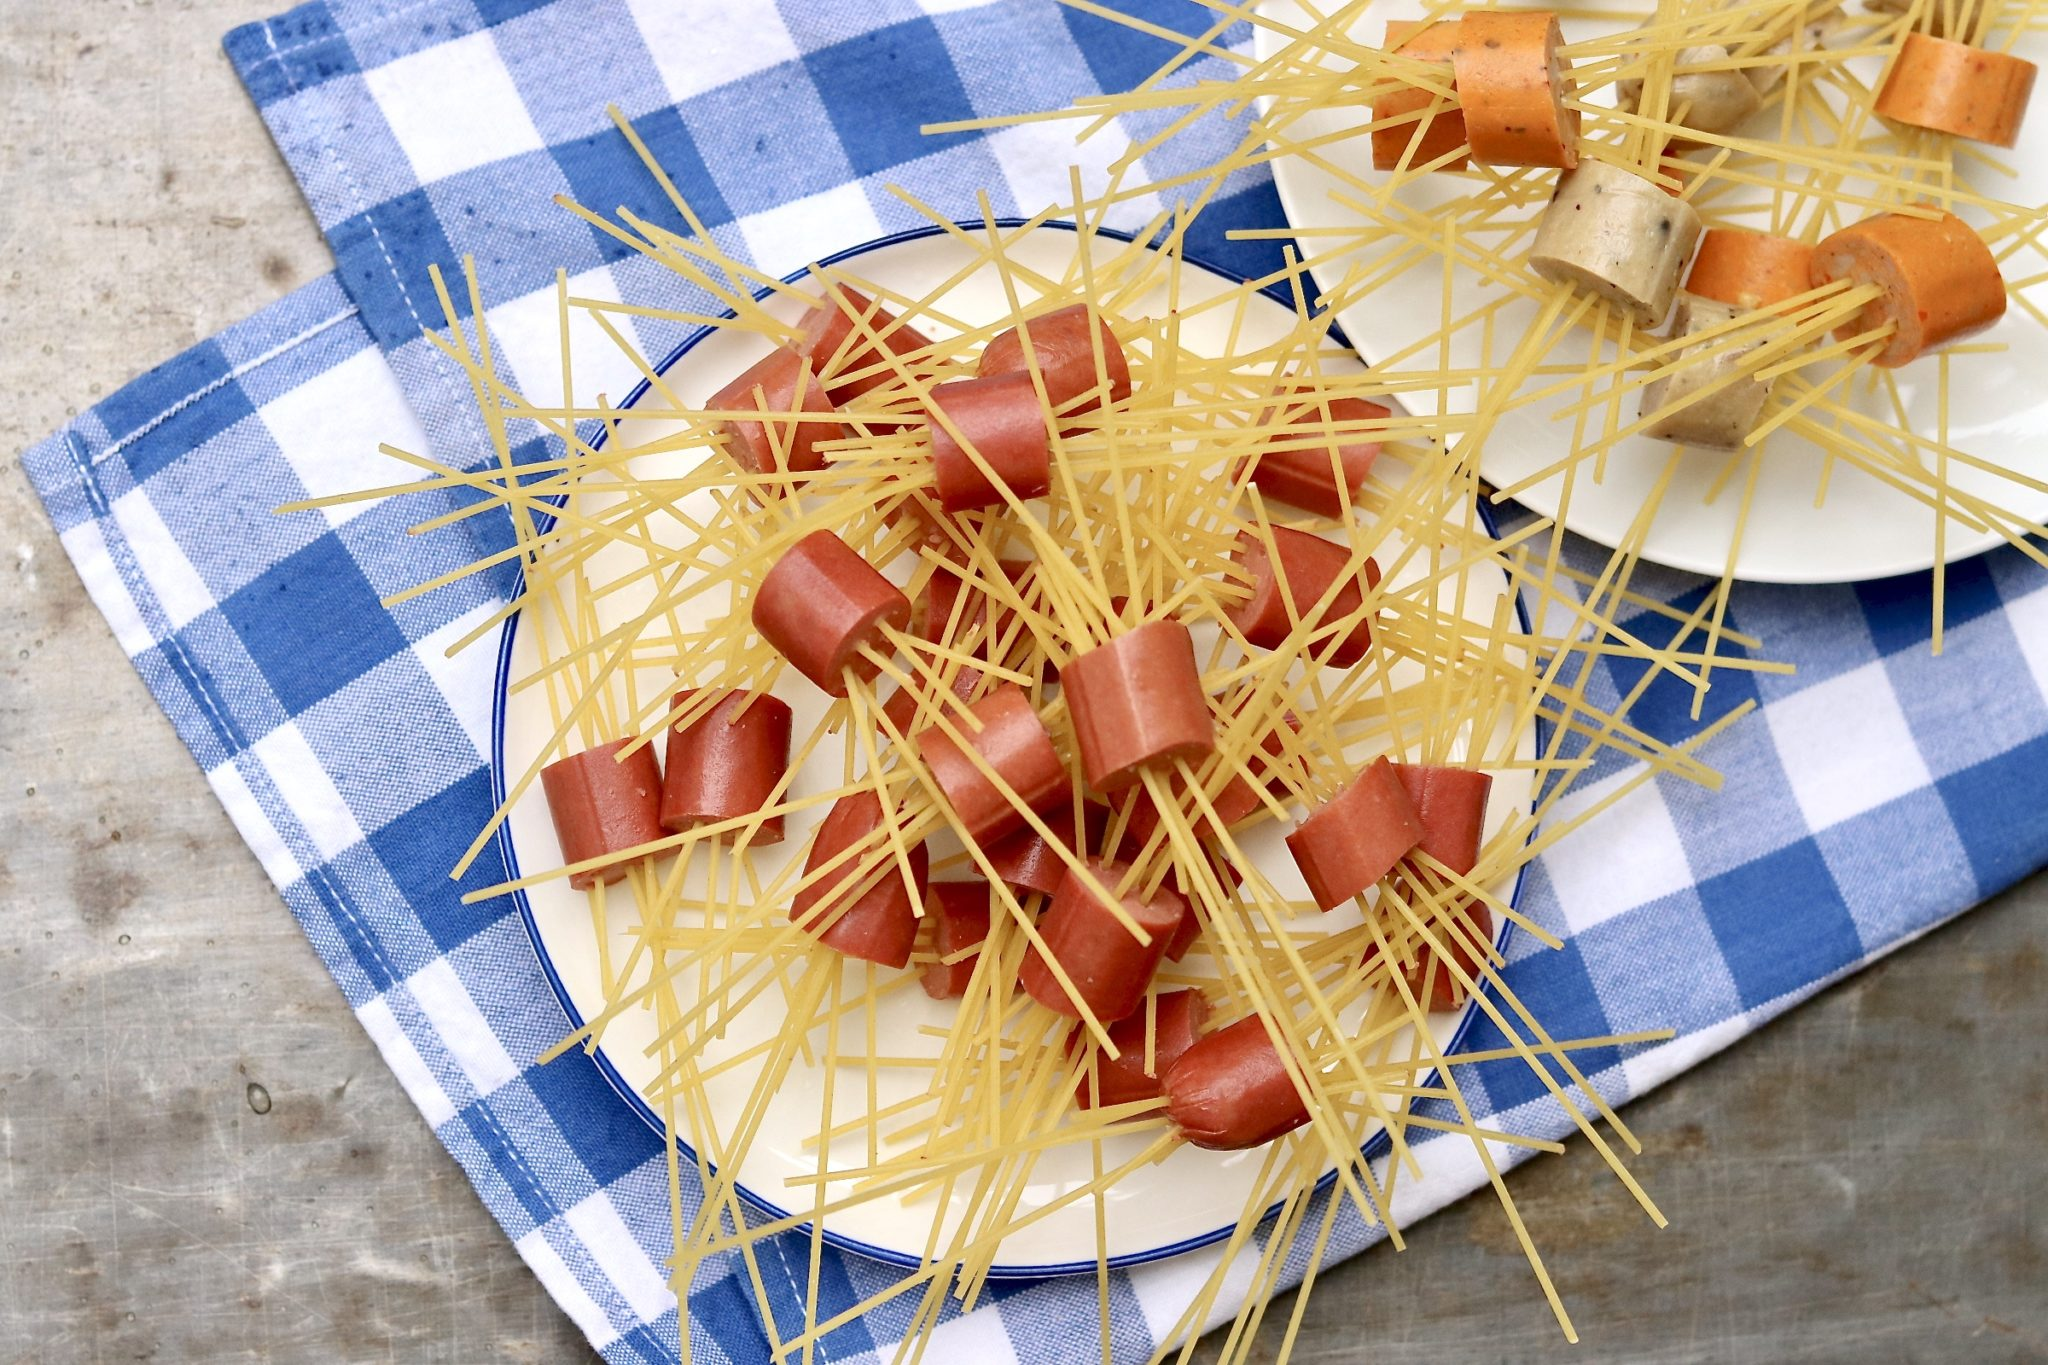 """Move over meatballs! This squirmy pasta dish makes a fun project for kids and a crowd-pleasing Halloween-themed meal. For a more """"mature"""" version, substitute your favorite cooked sausage for the hot dogs."""